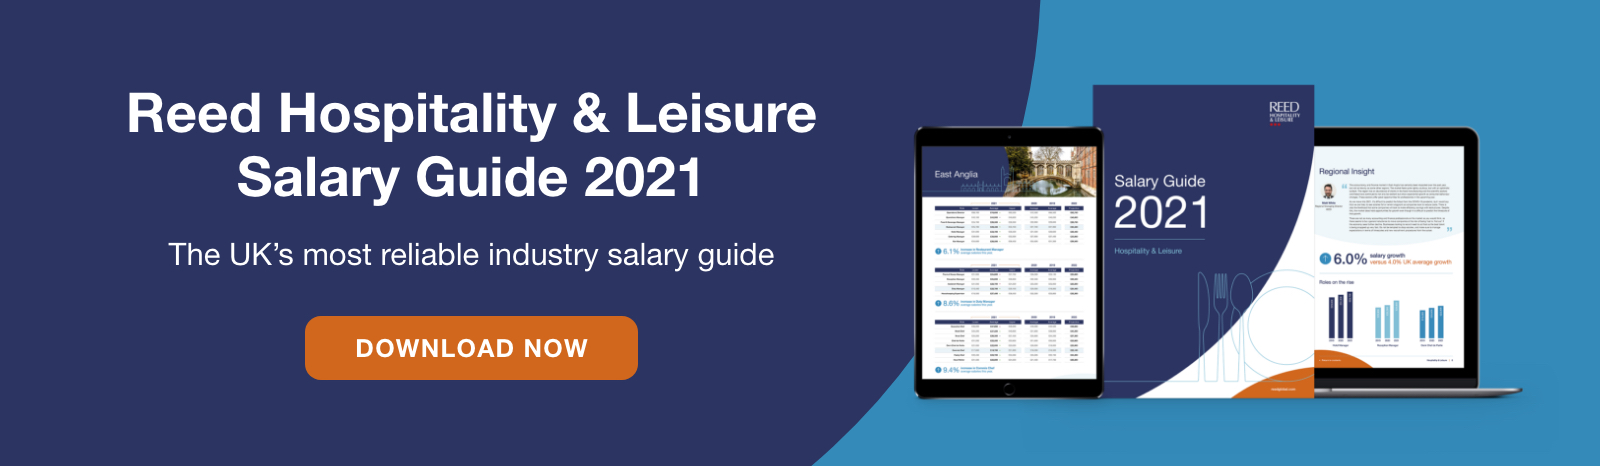 Download the Reed Hospitality and Leisure Salary Guide 2021 now